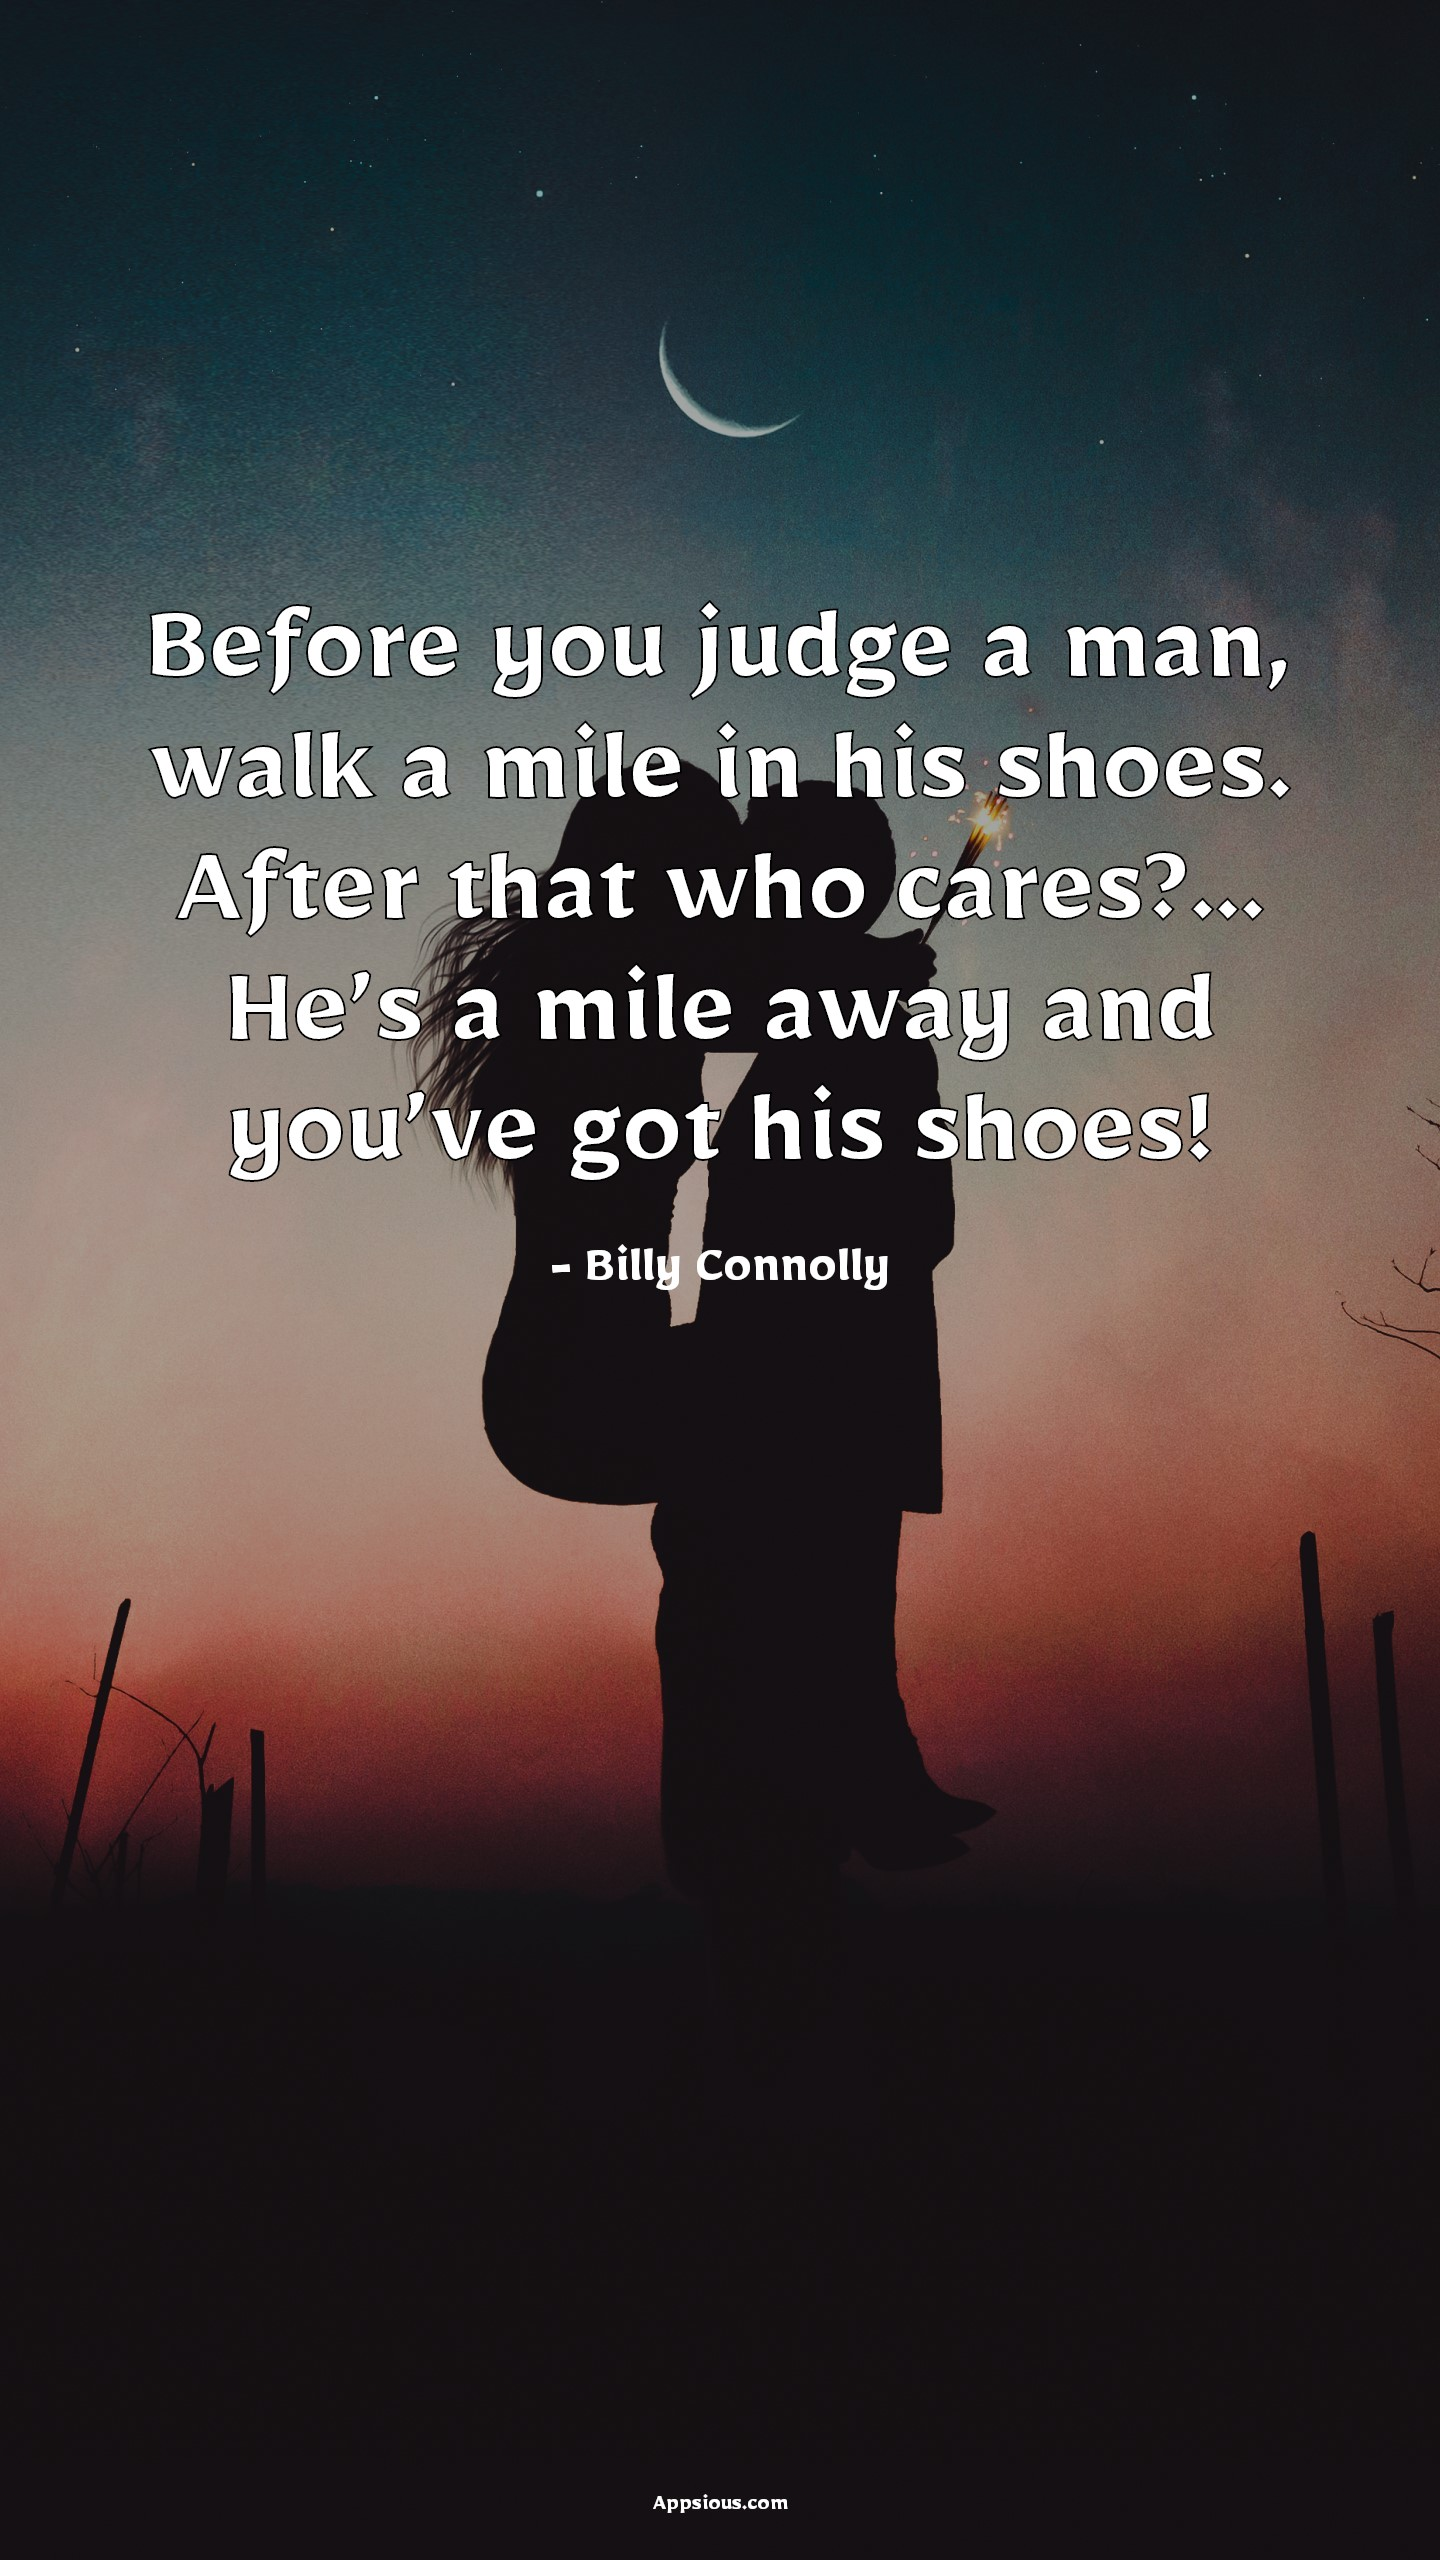 Before you judge a man, walk a mile in his shoes. After that who cares?... He's a mile away and you've got his shoes!